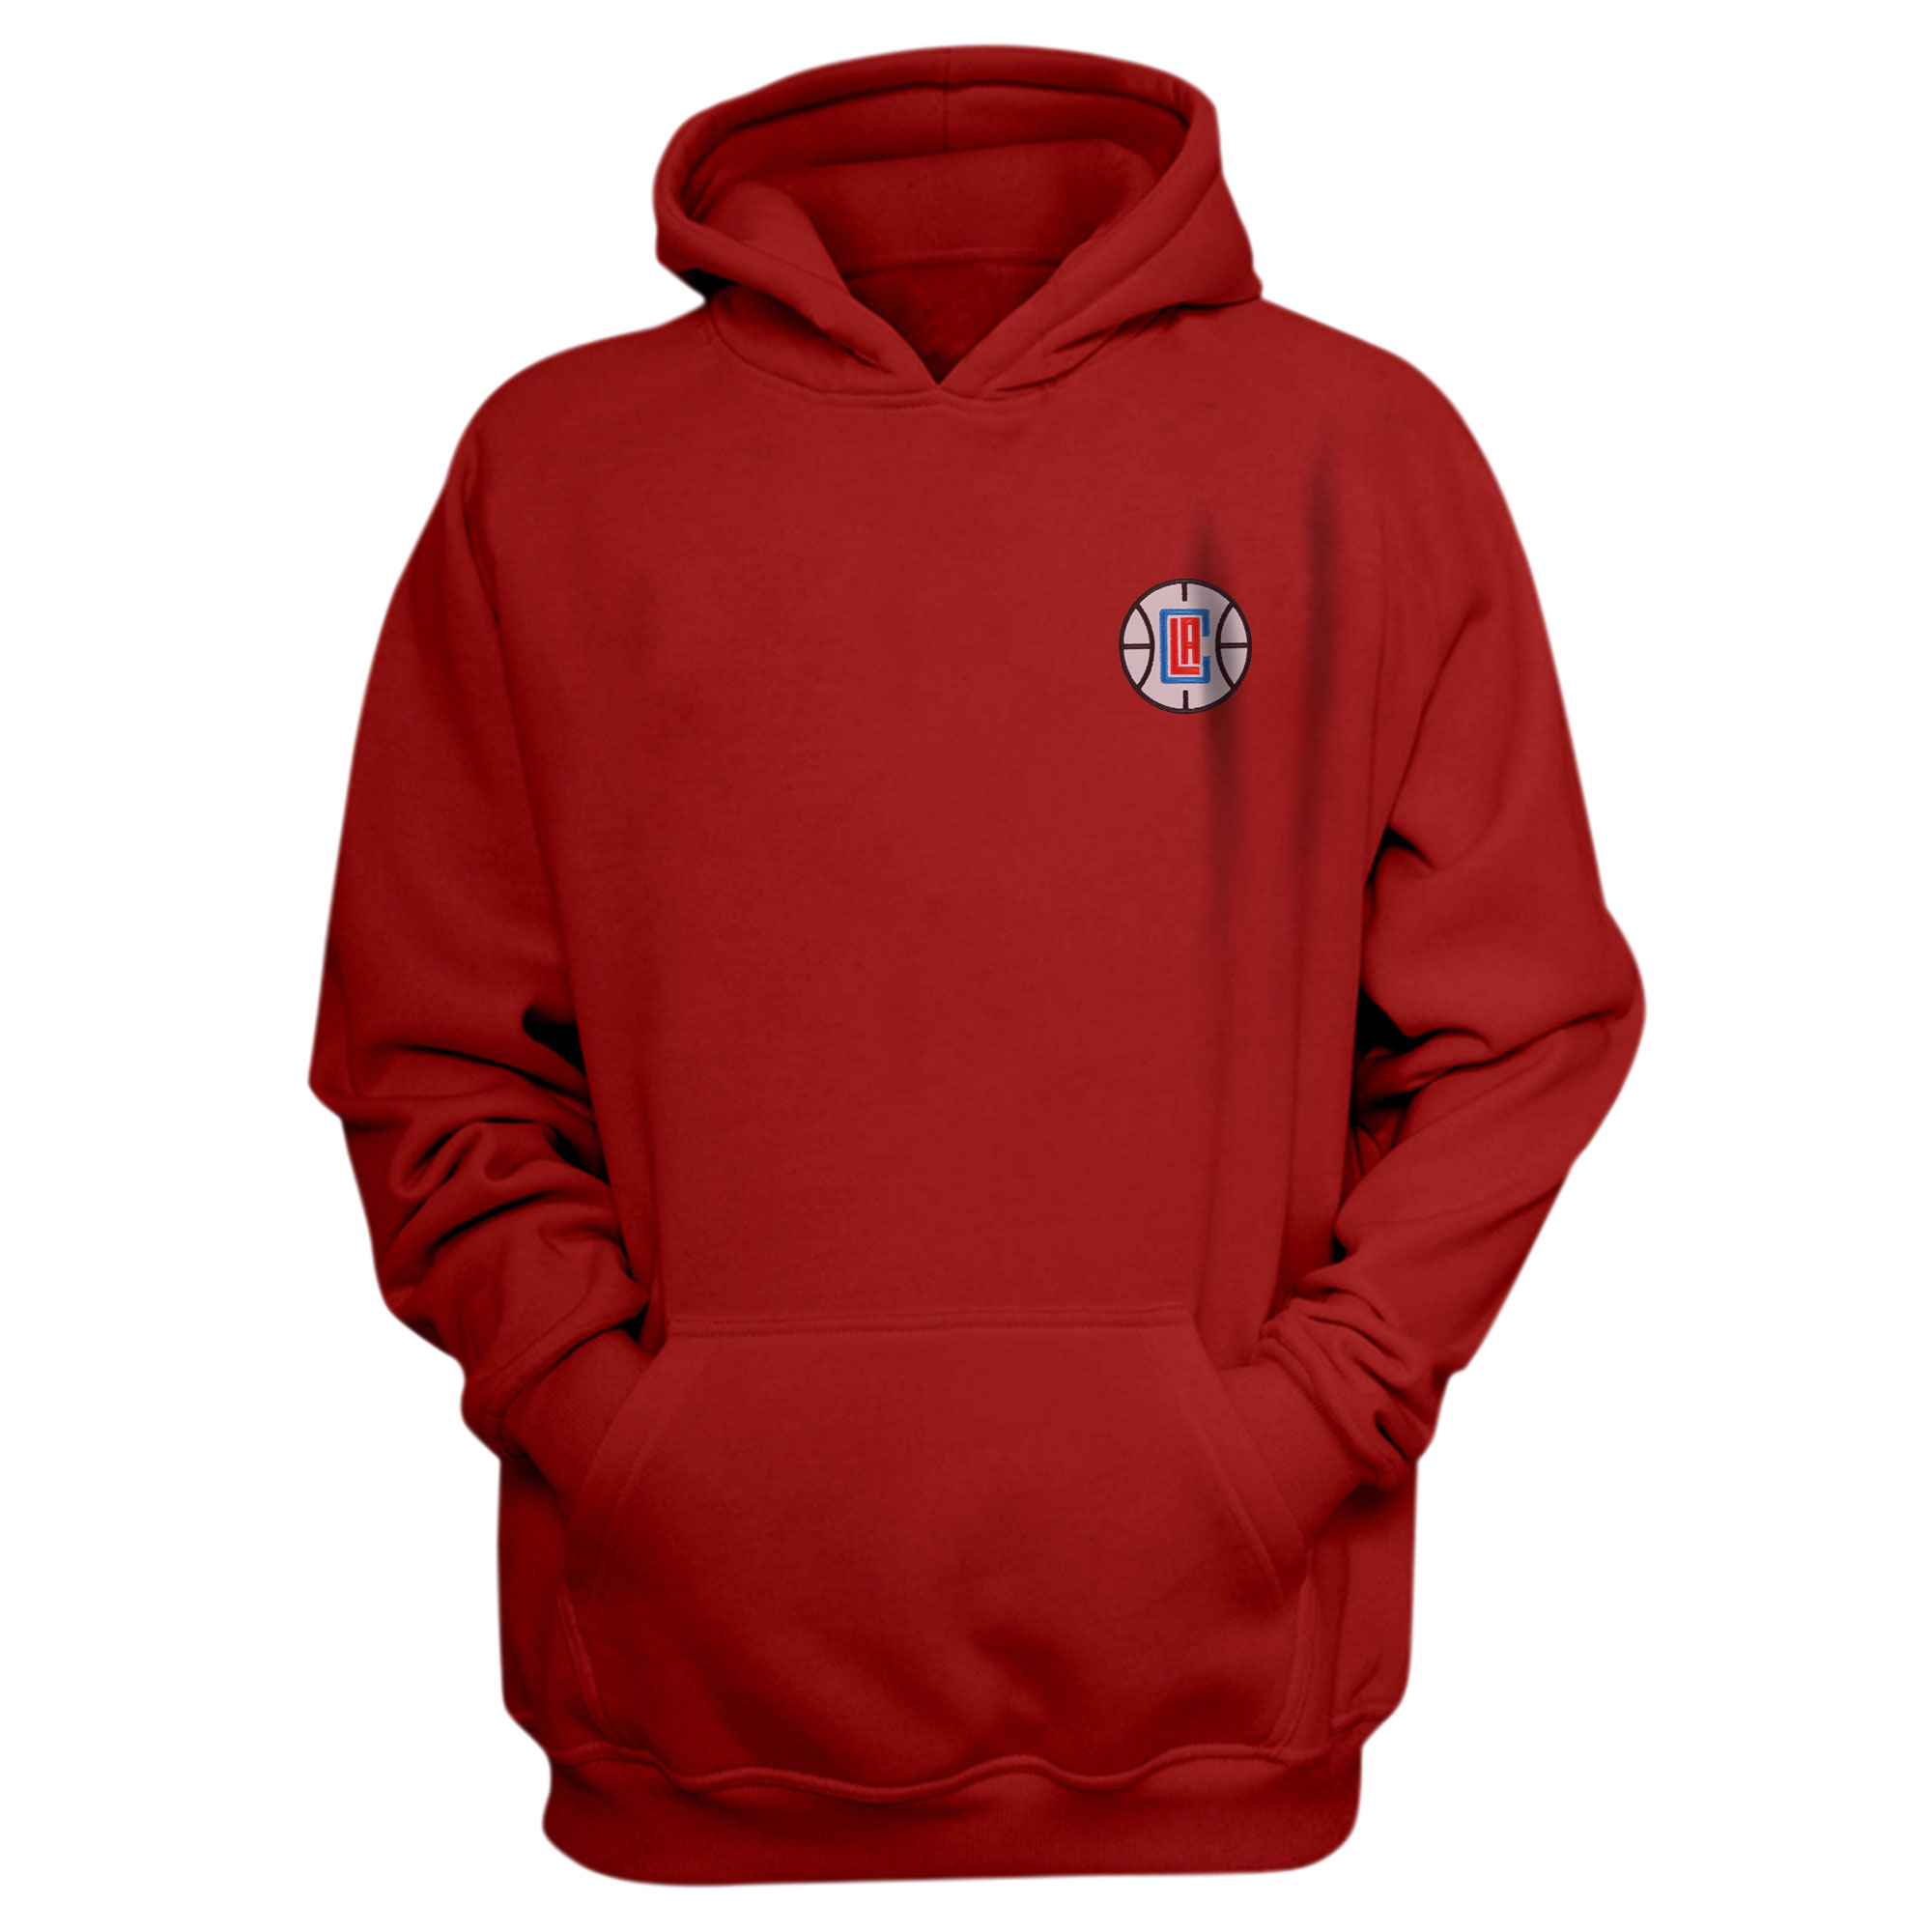 L.A. Clippers Hoodie (Örme)  (HD-RED-EMBR-CLIPPERS)